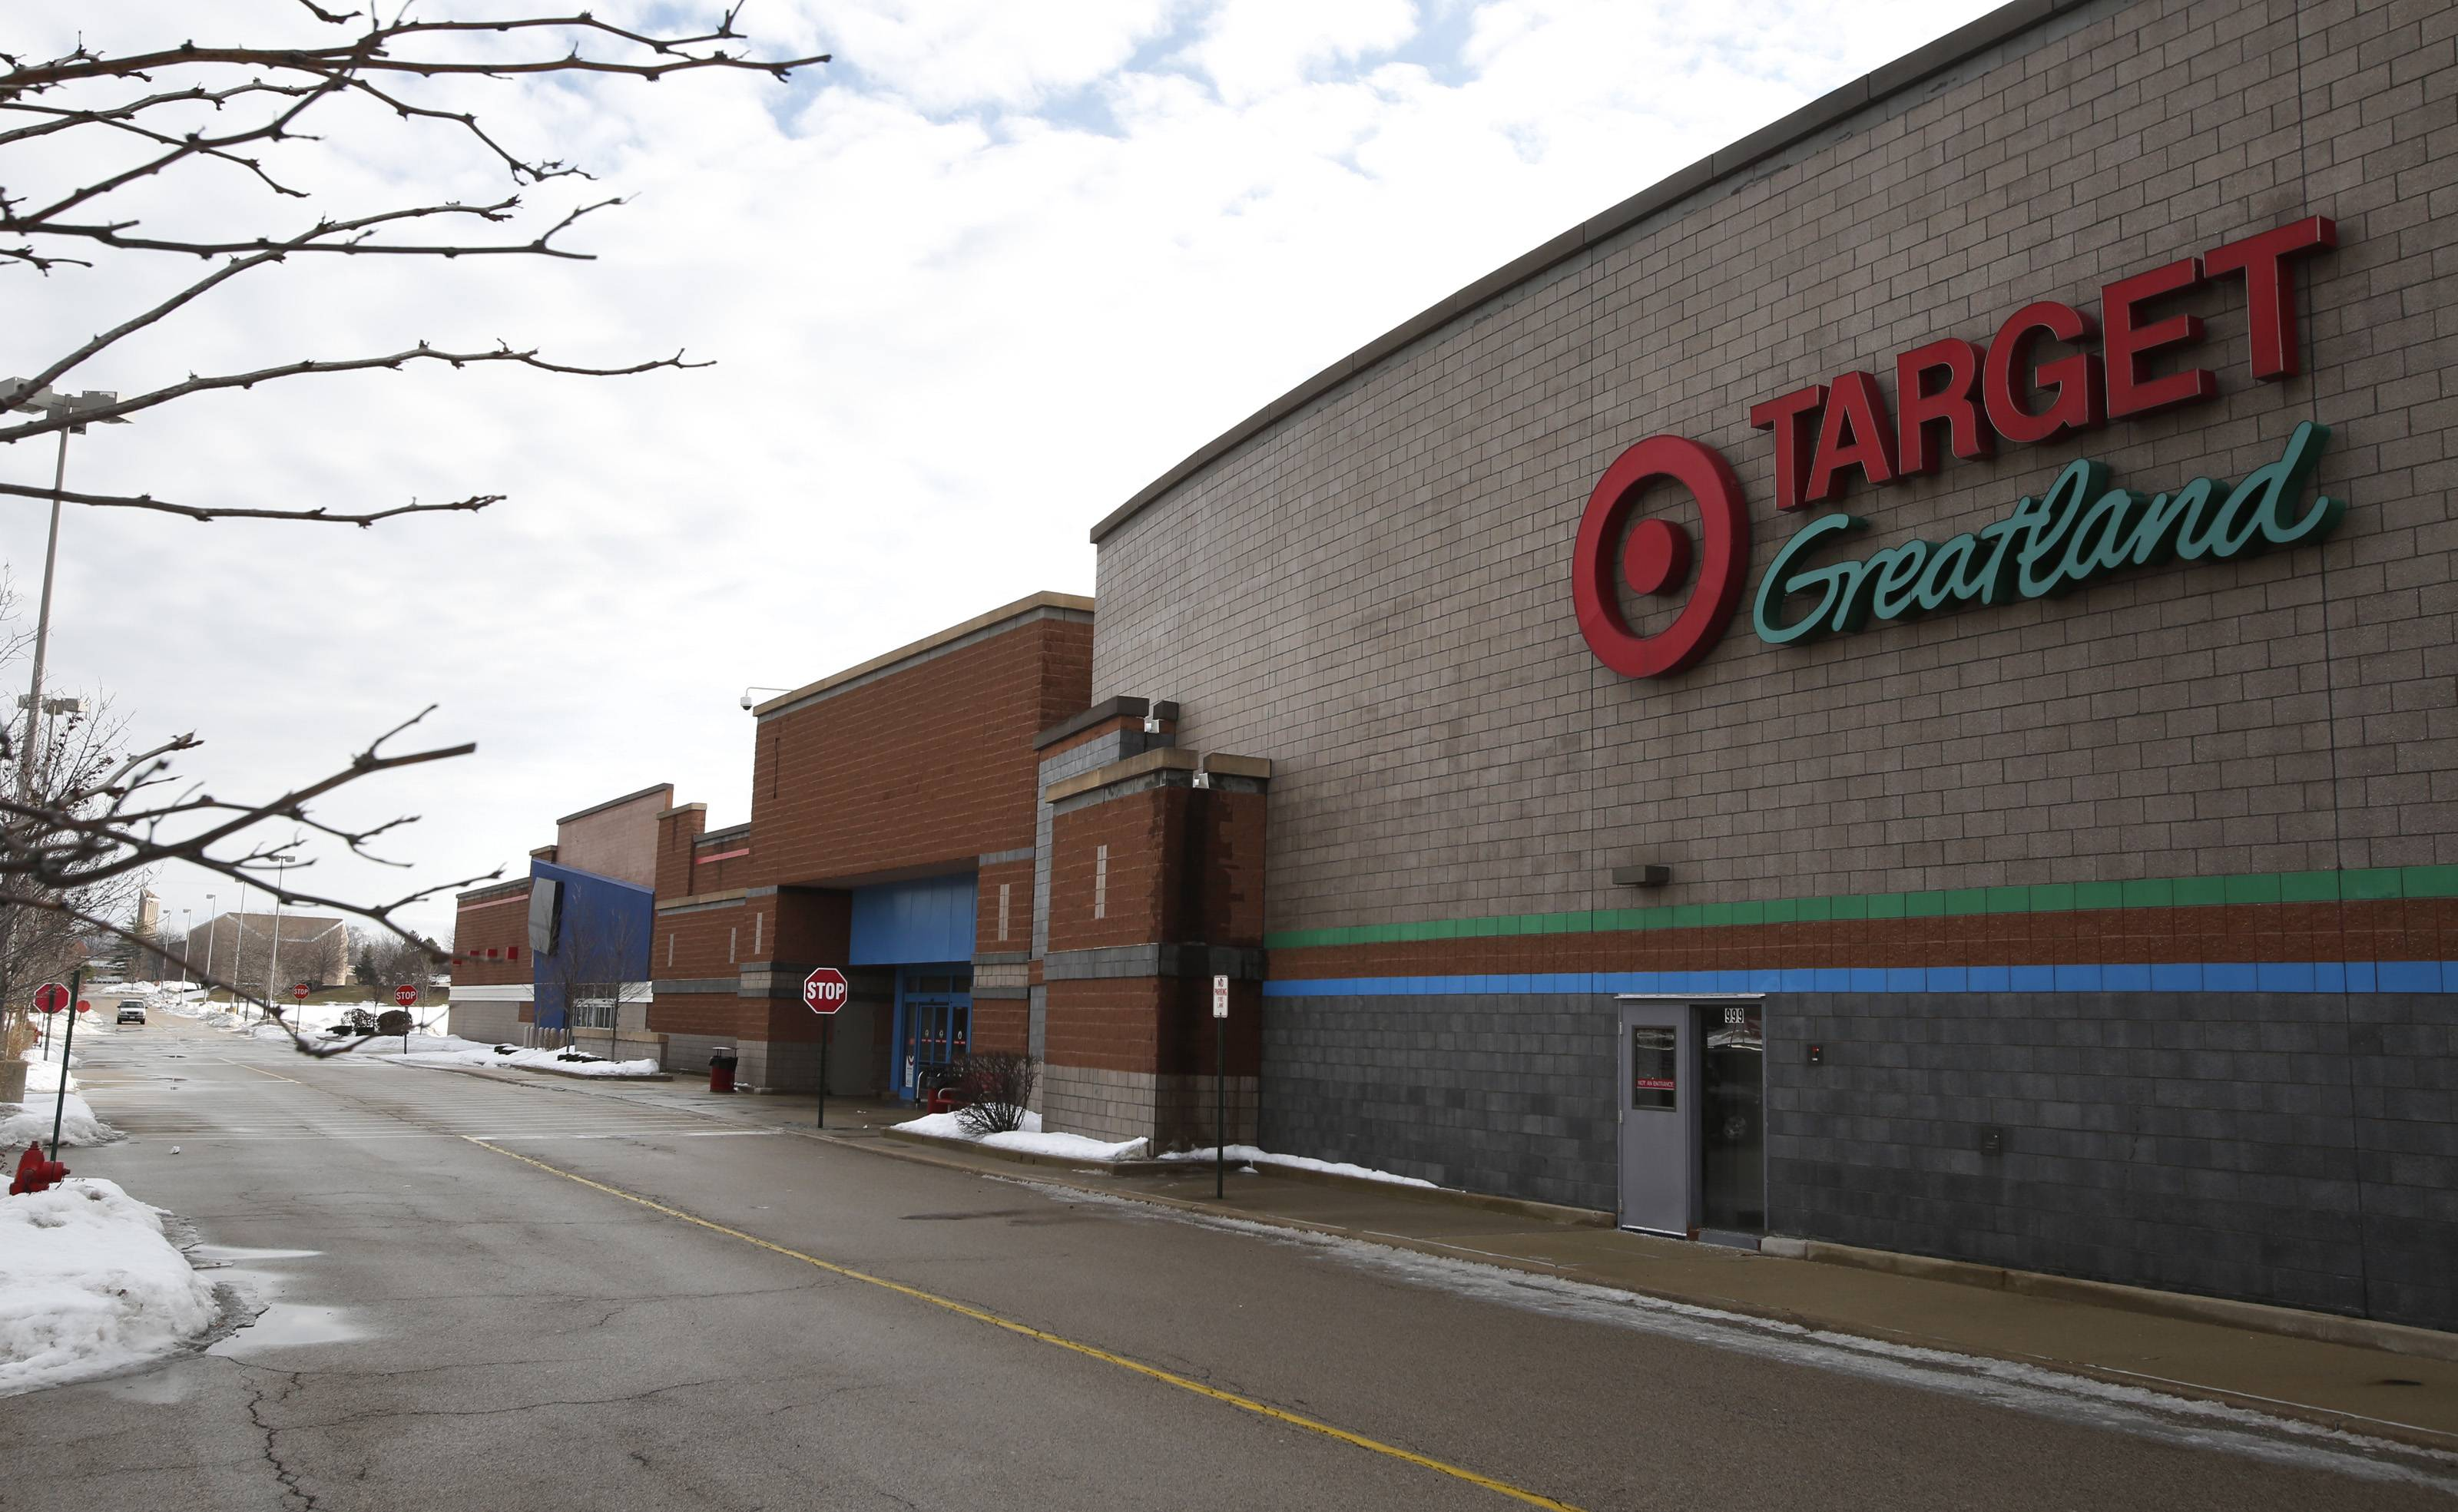 West Dundee leaders are responding to Target's closure by looking at several new ways to generate new revenue for the village through taxes and fees. The closure is to blame for the village's roughly $300,000 deficit in the new budget.